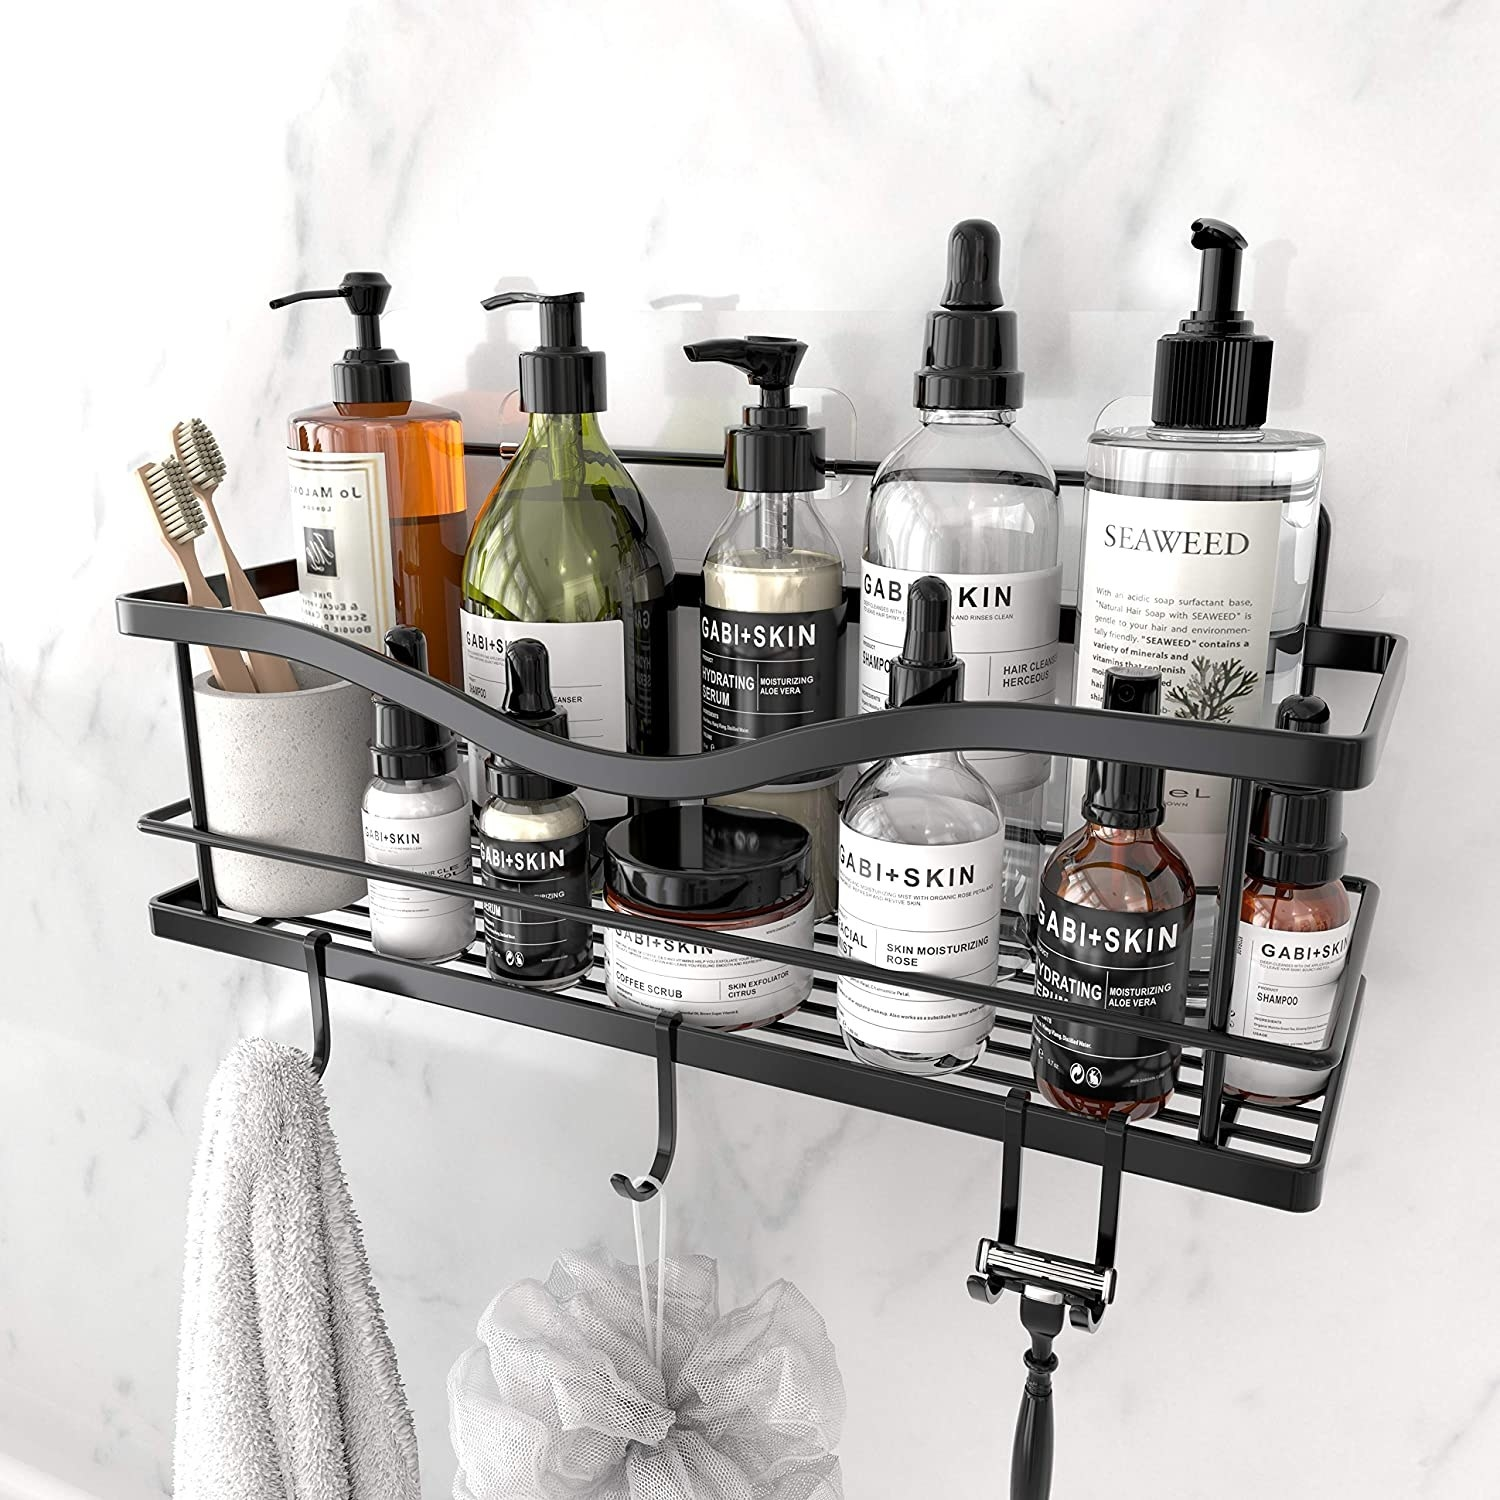 A stainless shower basket shelf with hooks